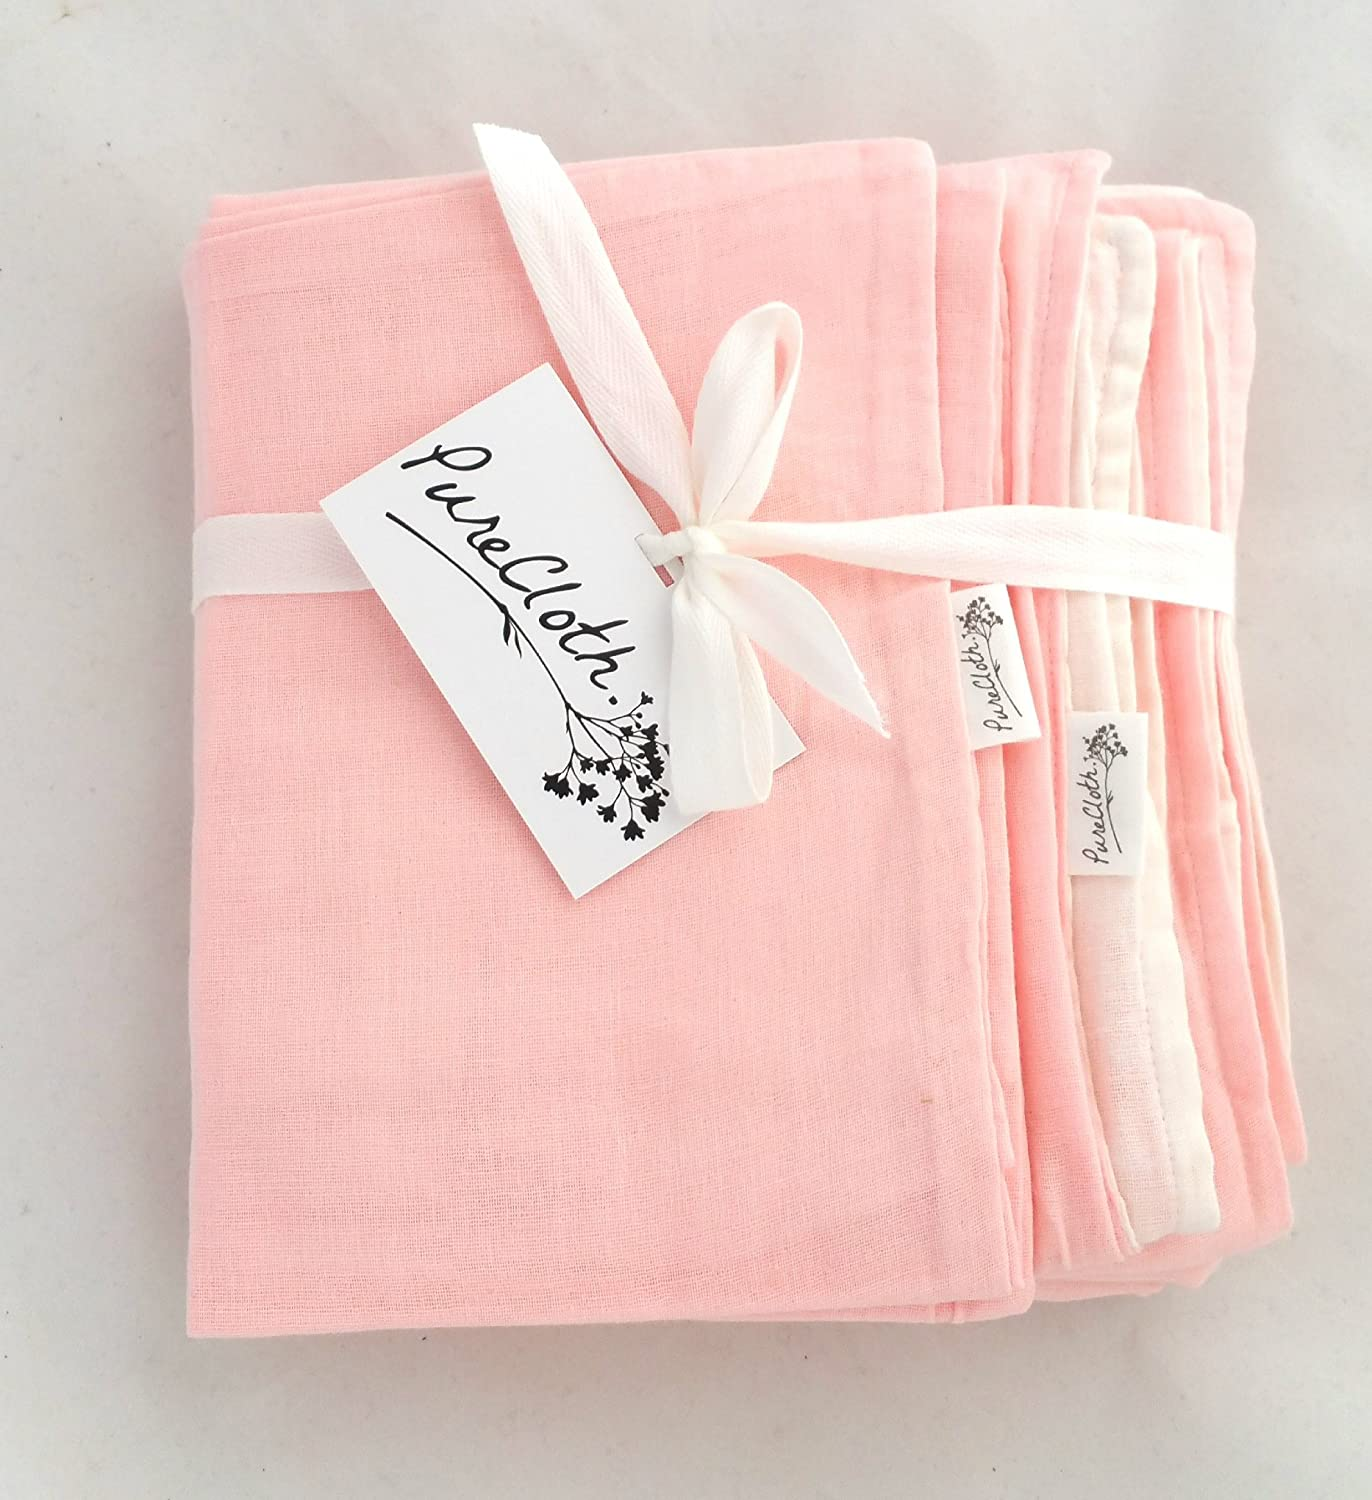 PureCloth Super Soft 2 Piece Set Cotton Baby Toddler Everything Blanket with Pillowcase for Travel, School, Crib, Stroller Light Pink